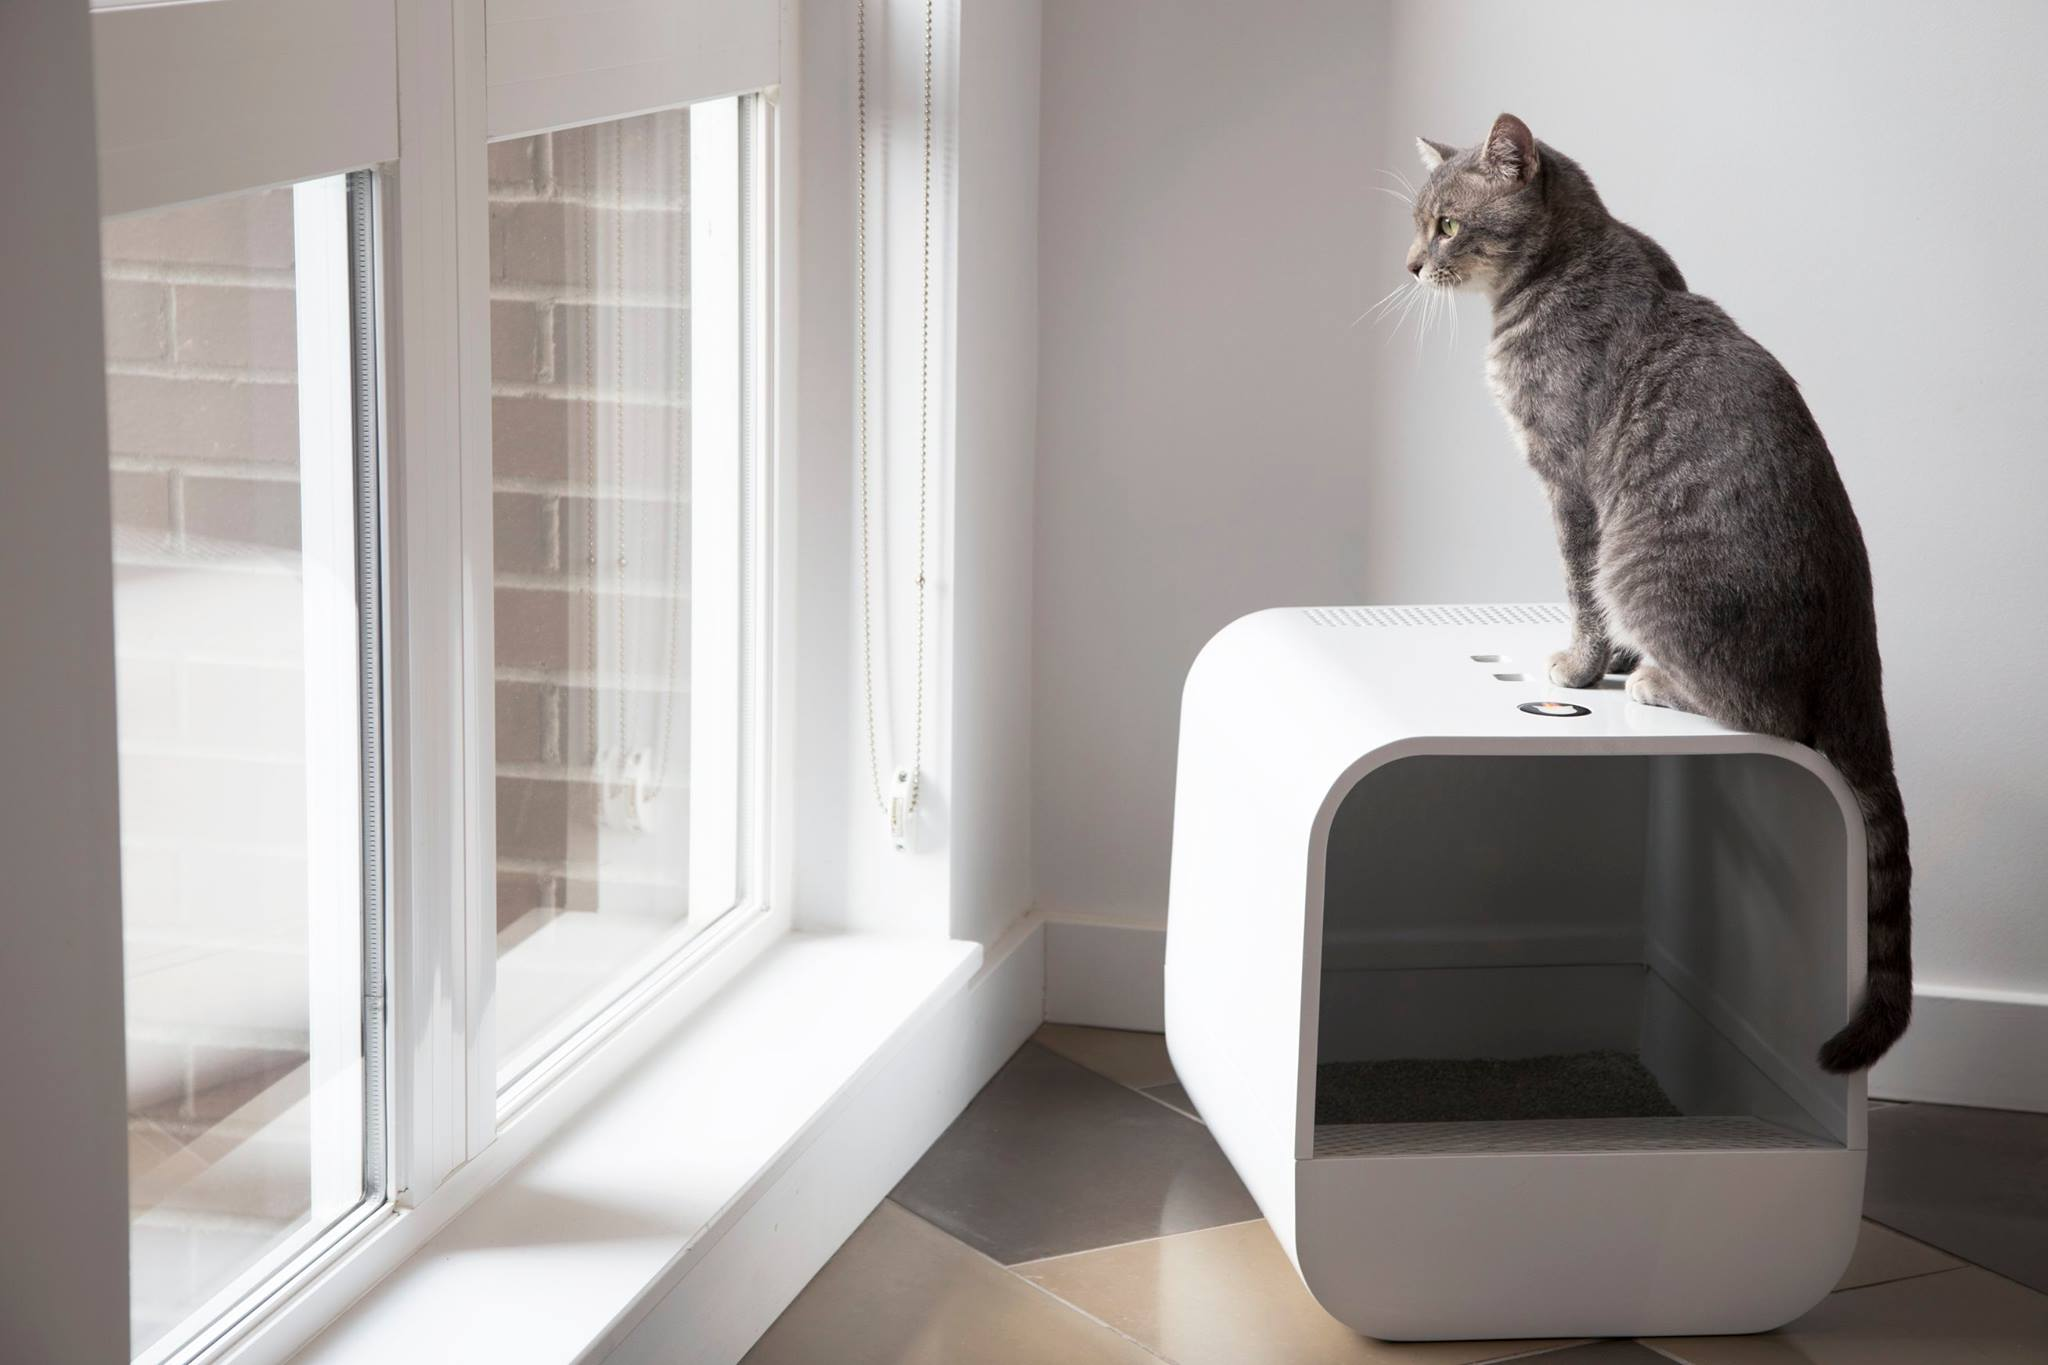 grand poobox modernstyle covered litter box kickstarter campaign - grand poobox modernstyle covered litter box kickstarter campaign